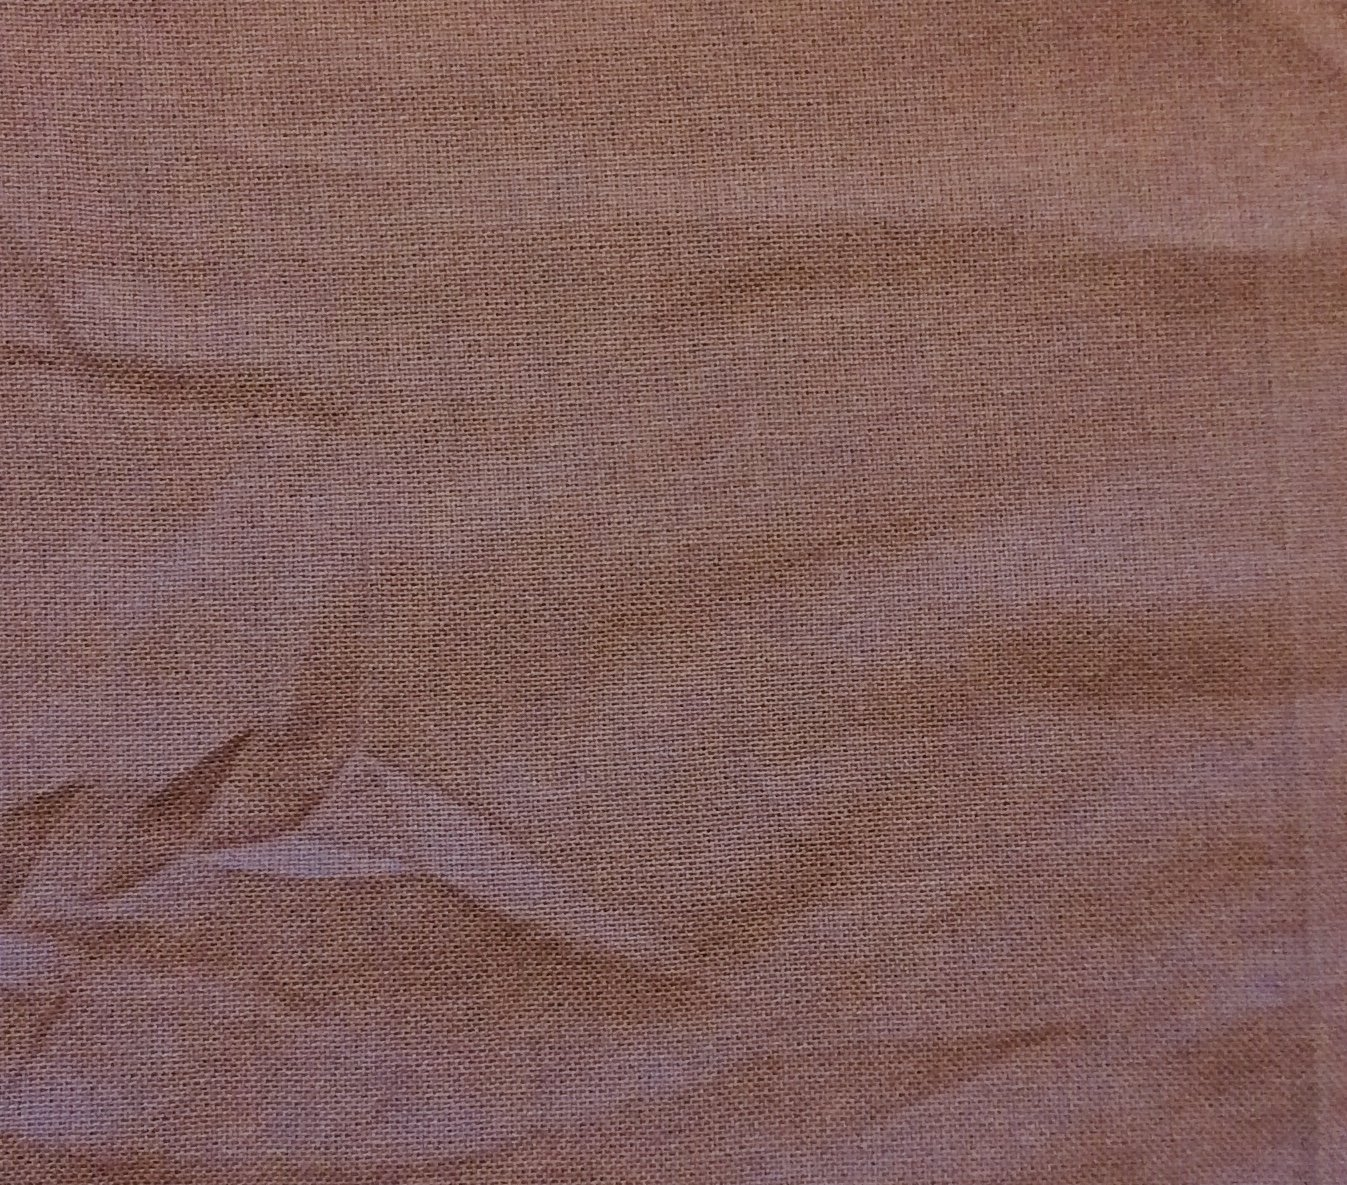 Visible Weave Made in Japan Warm Plum Light Purple Canvas Mid Weight Solid Apparel Home Decor Sewing Fabric DMD003